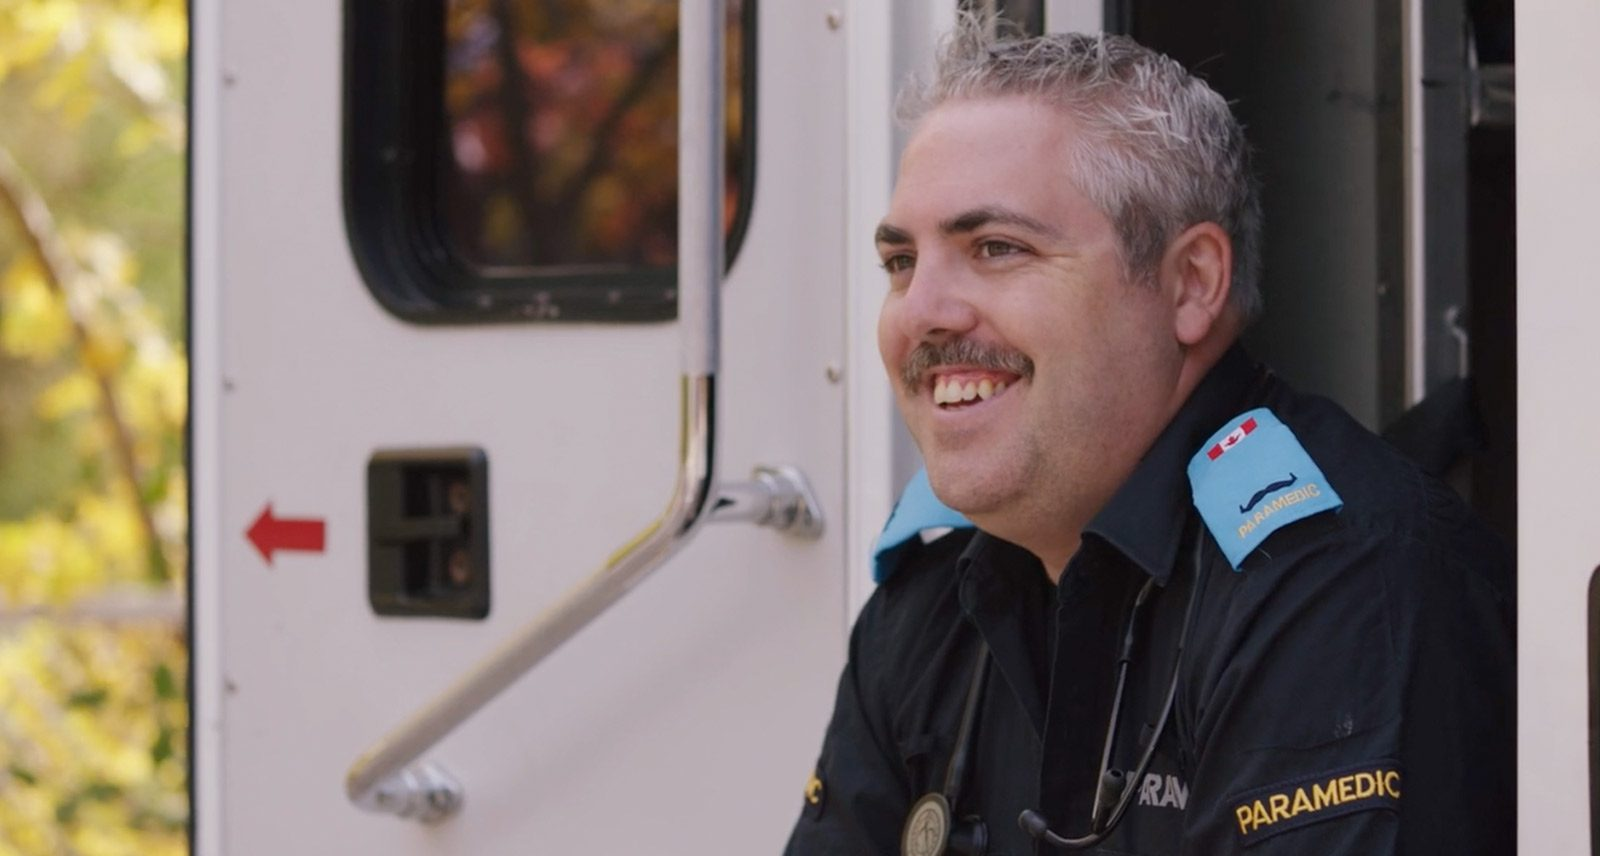 Movember Stories: Toronto Paramedic Eden Rosenberg on Breaking Down Stigmas